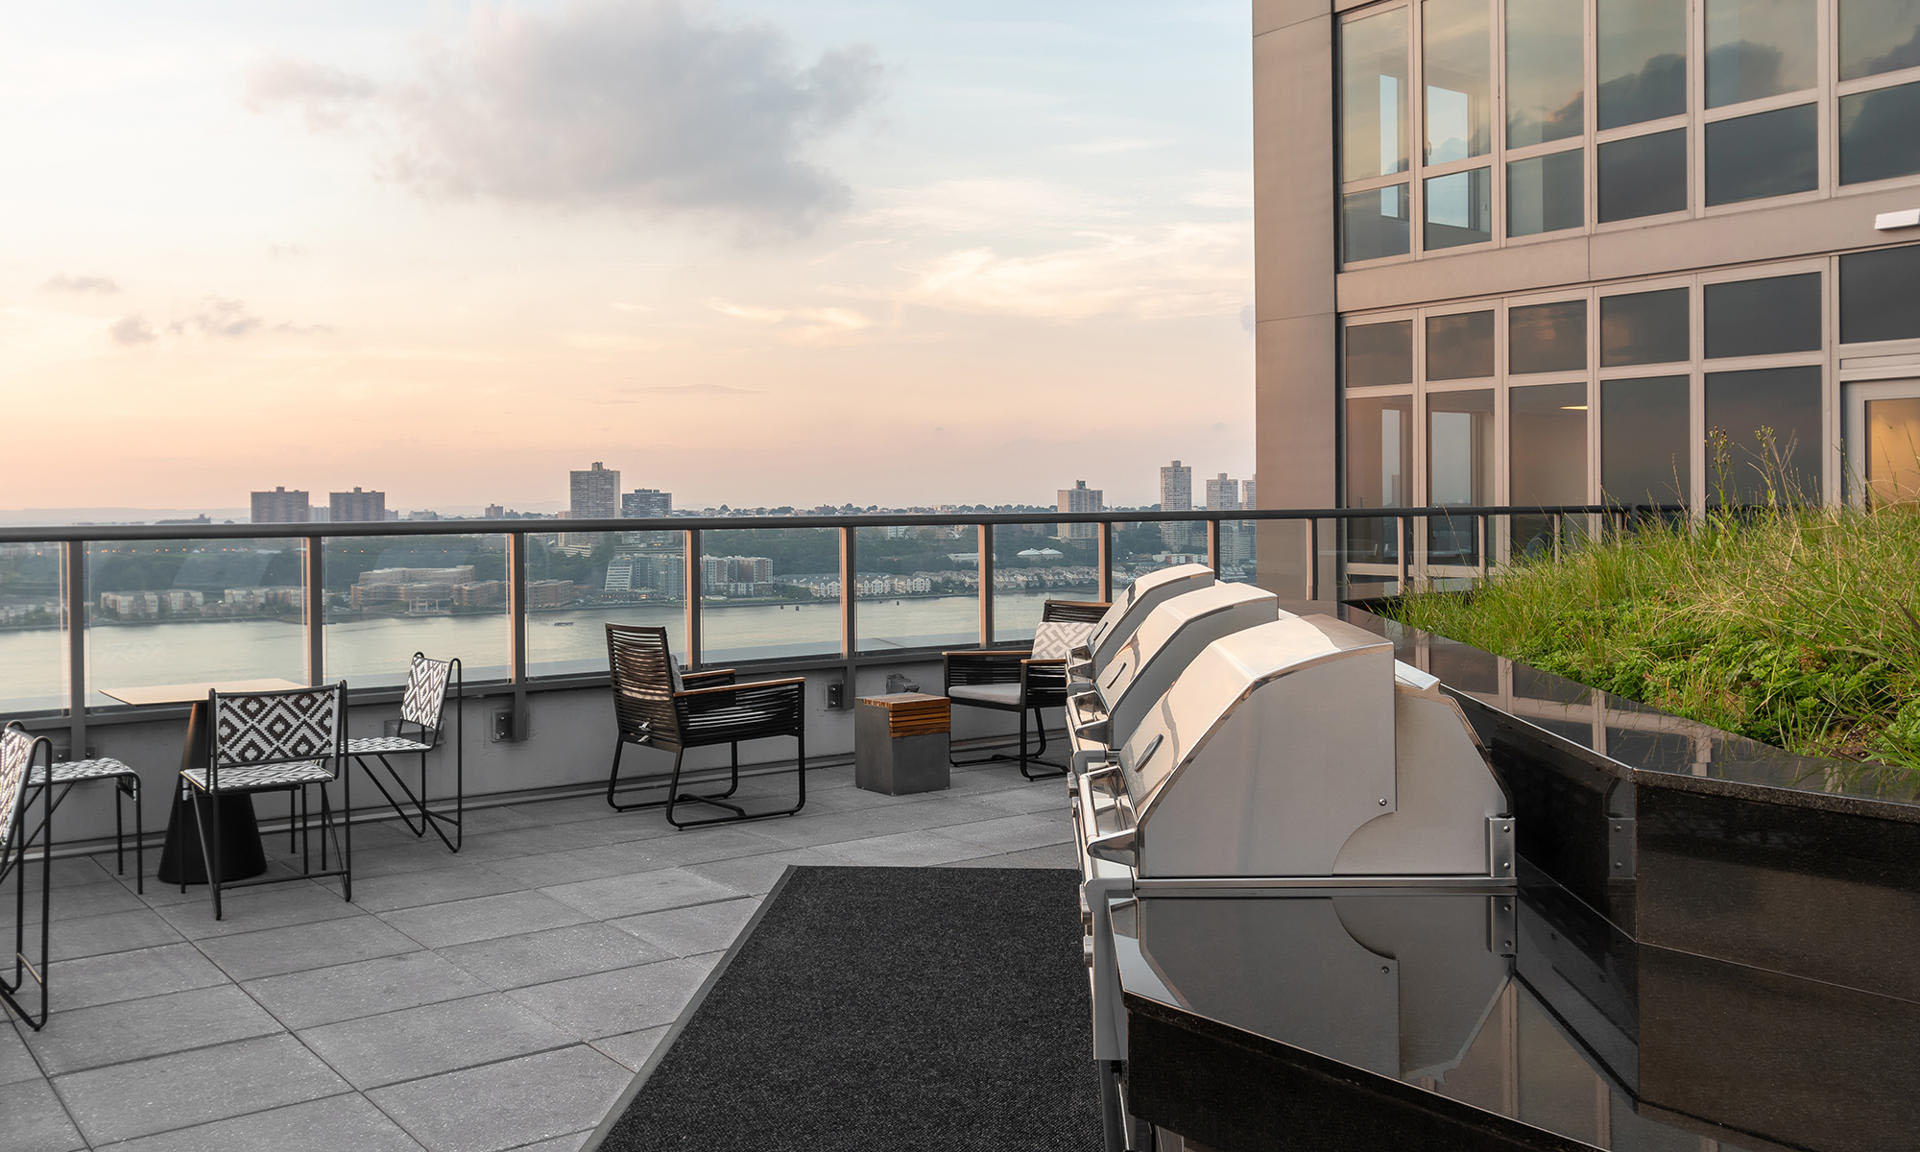 606 w57th st themax 31st floor bbq 10 2018 final